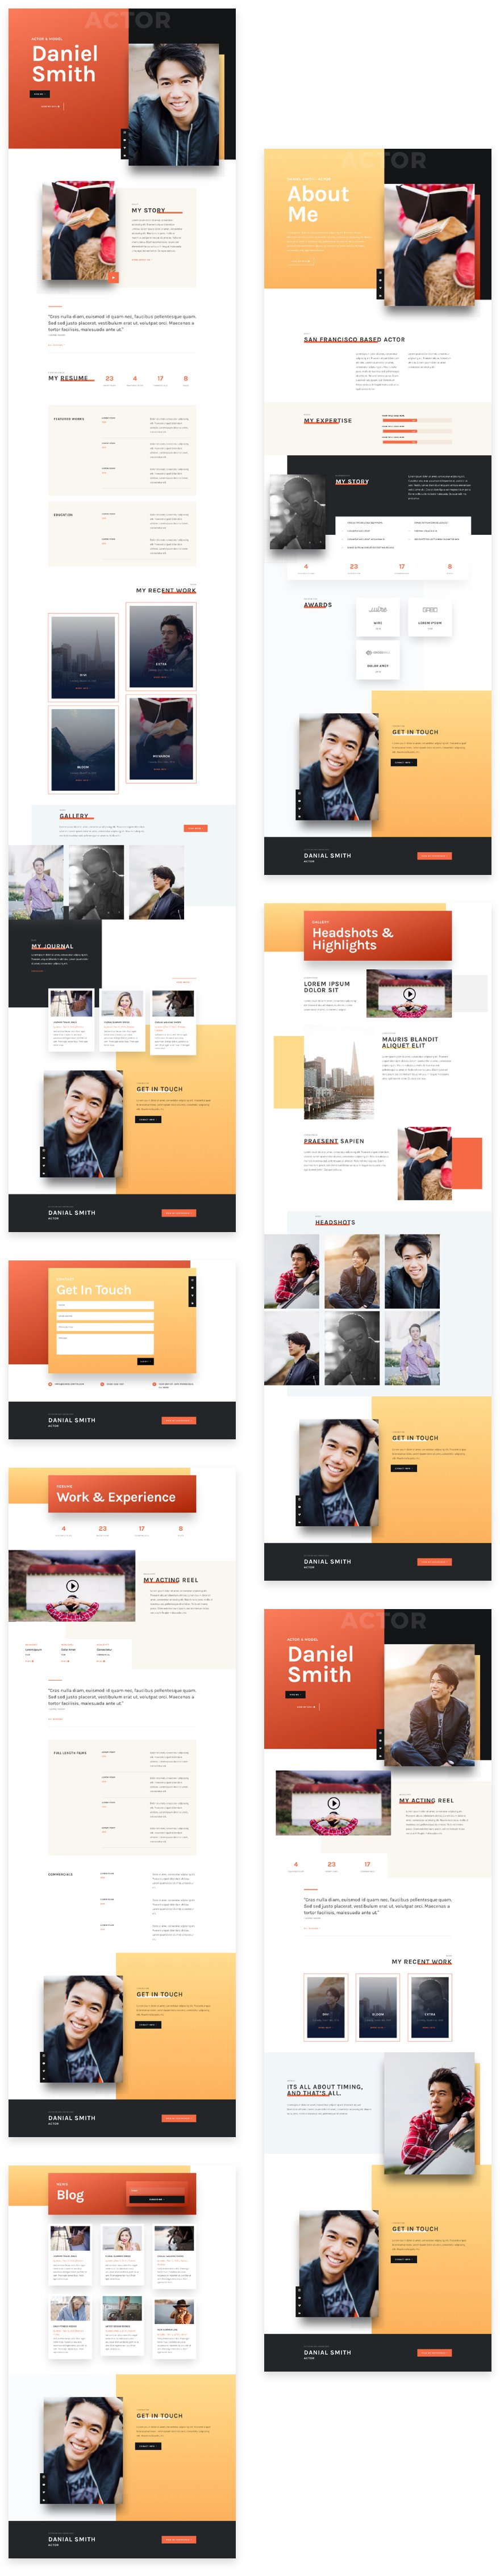 Actor CV layout pack